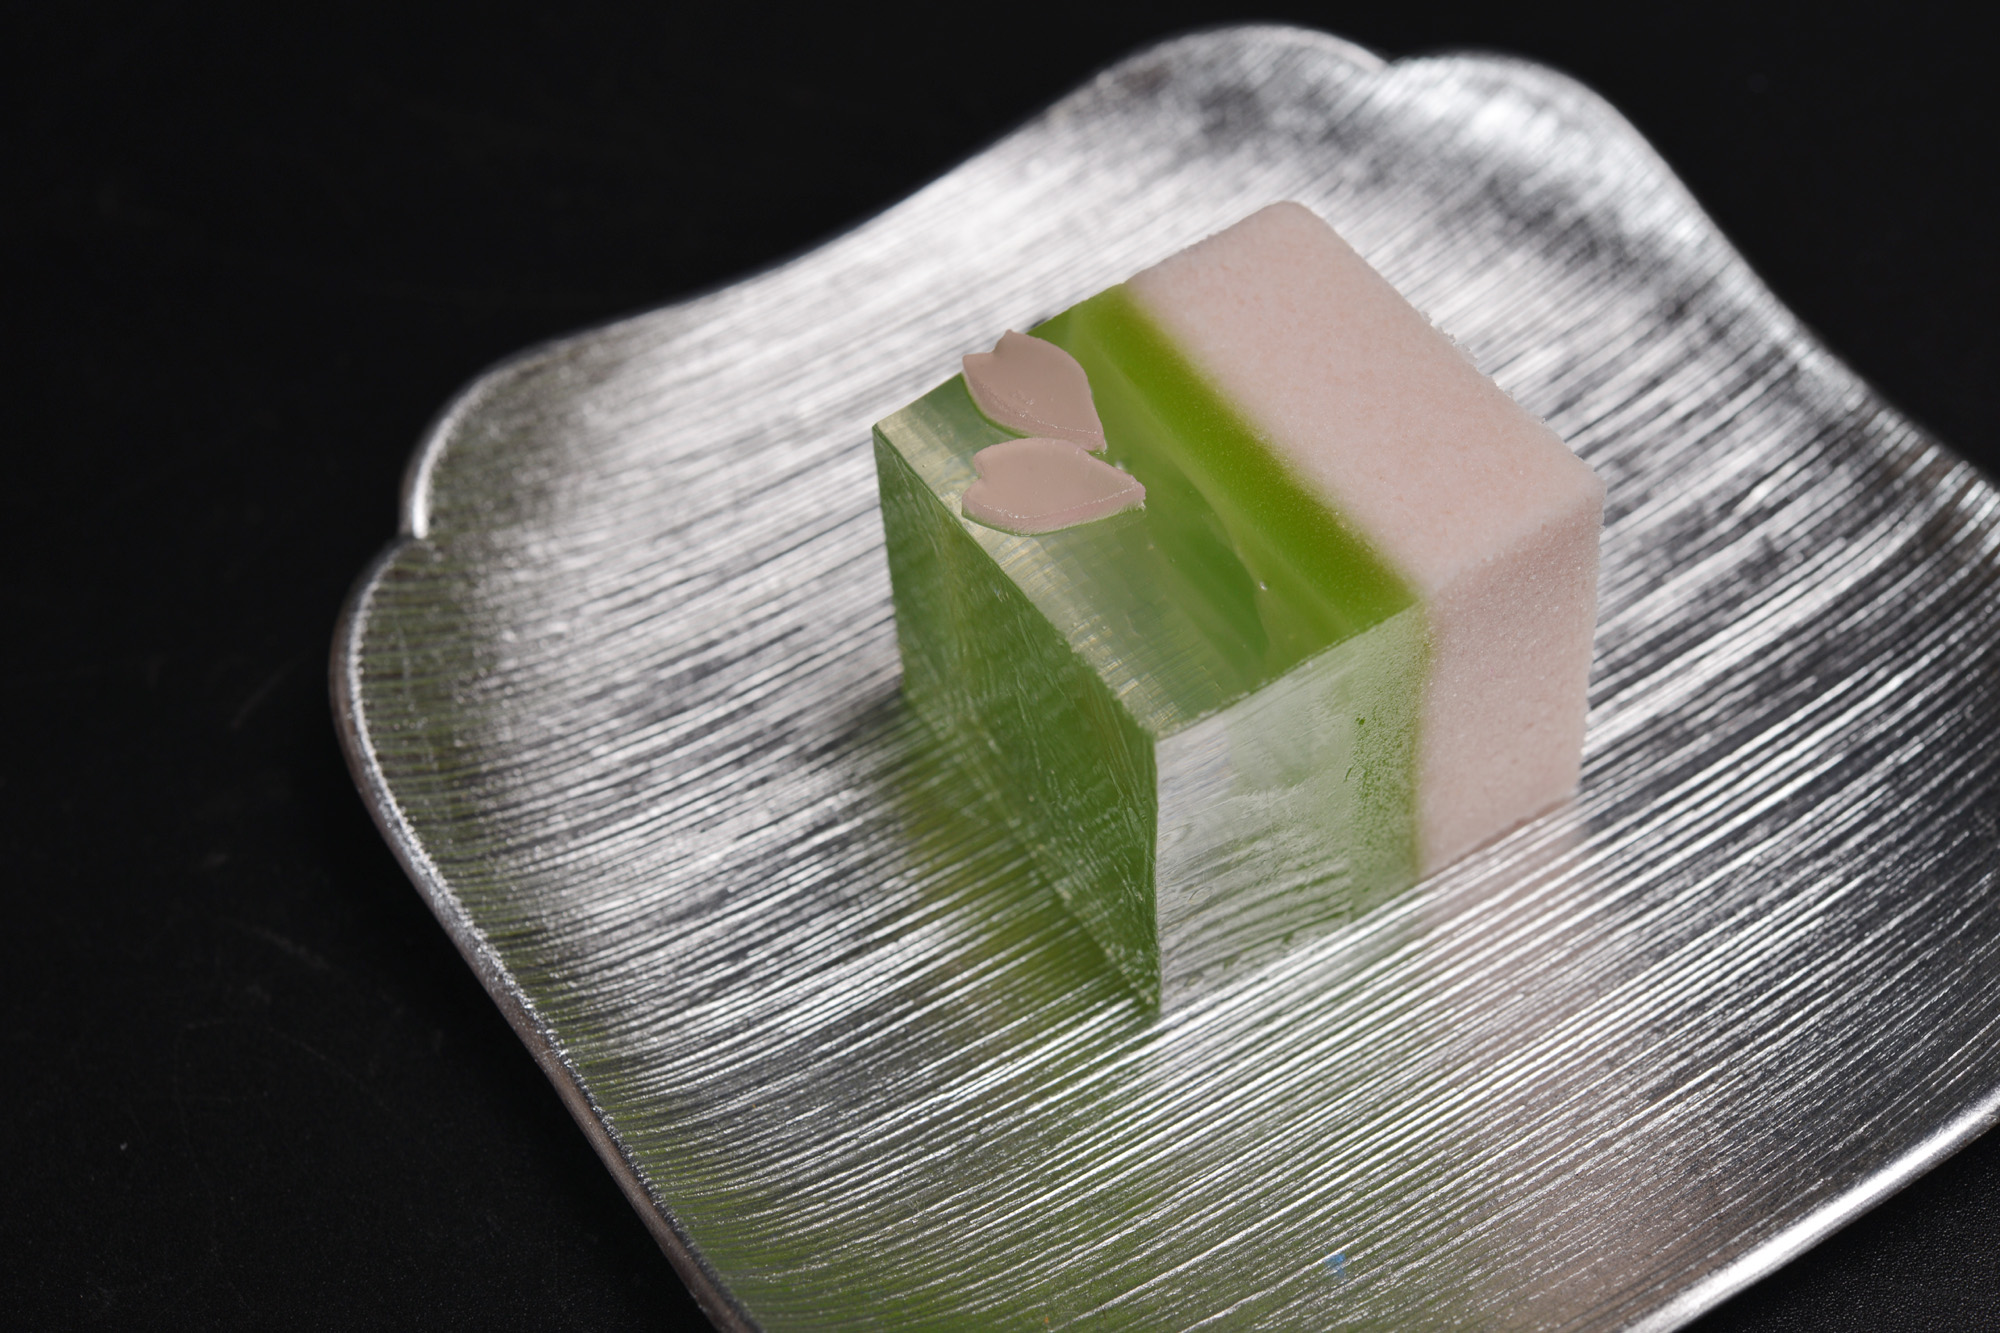 和菓子の写真 上生菓子 wagashi japanese sweets photo Nikon D800